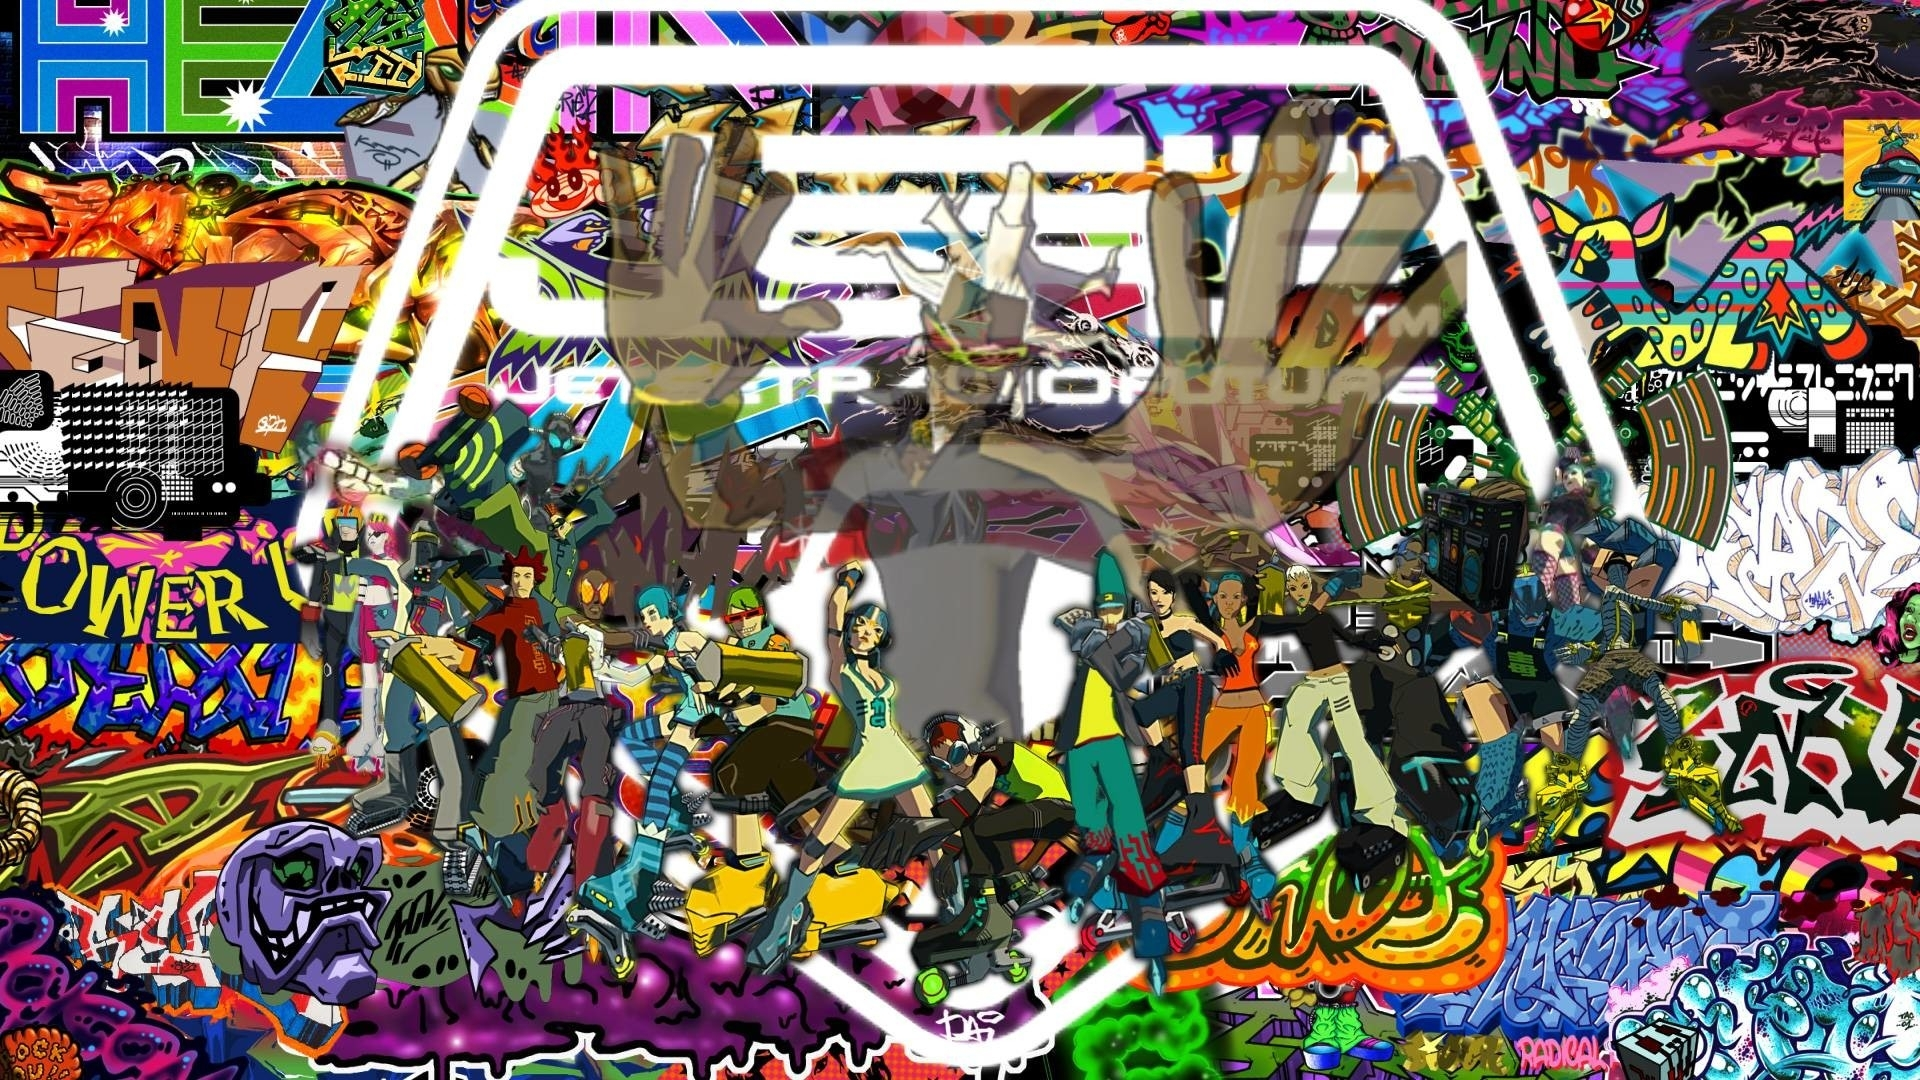 jet set radio future wallpaper (65+ images)